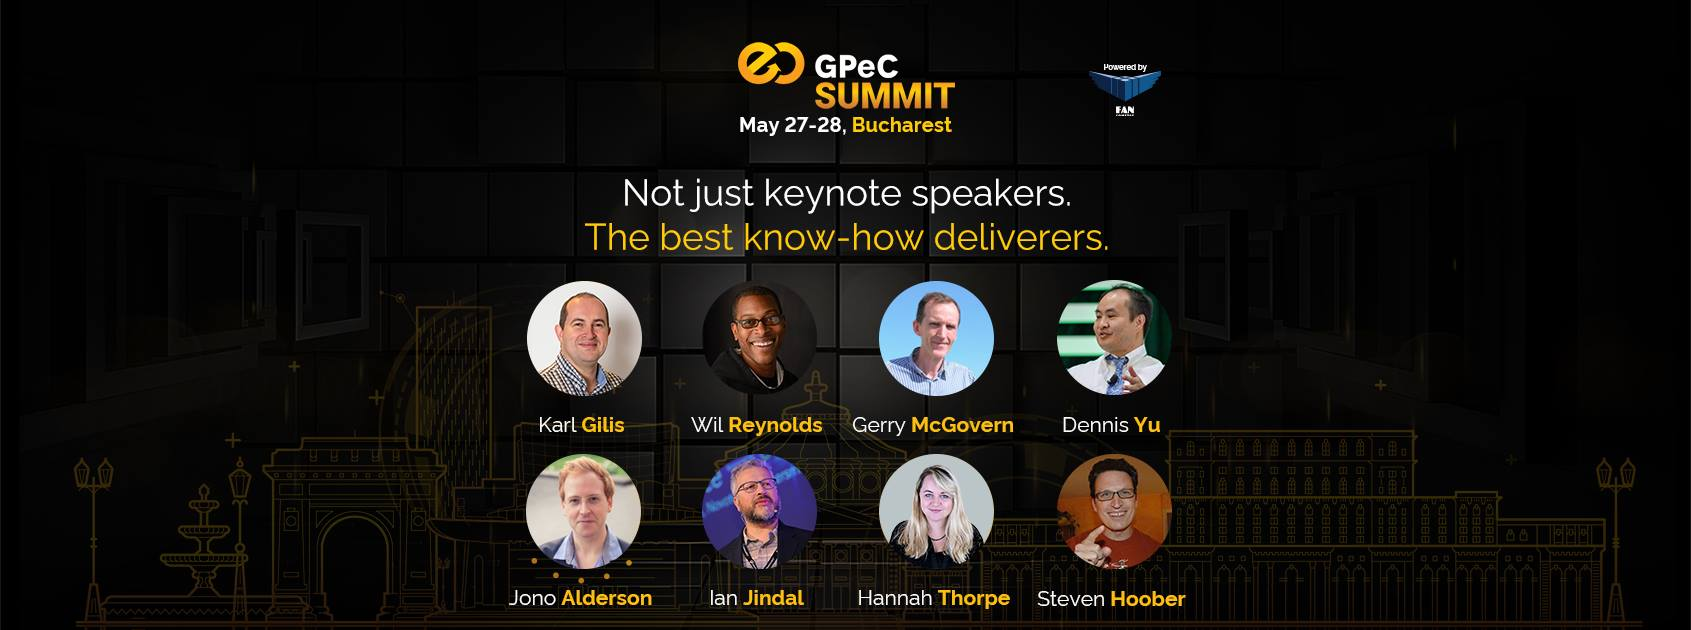 Speakeri GPeC E-Commerce SUMMIT 27-28 Mai Bucuresti, Romania